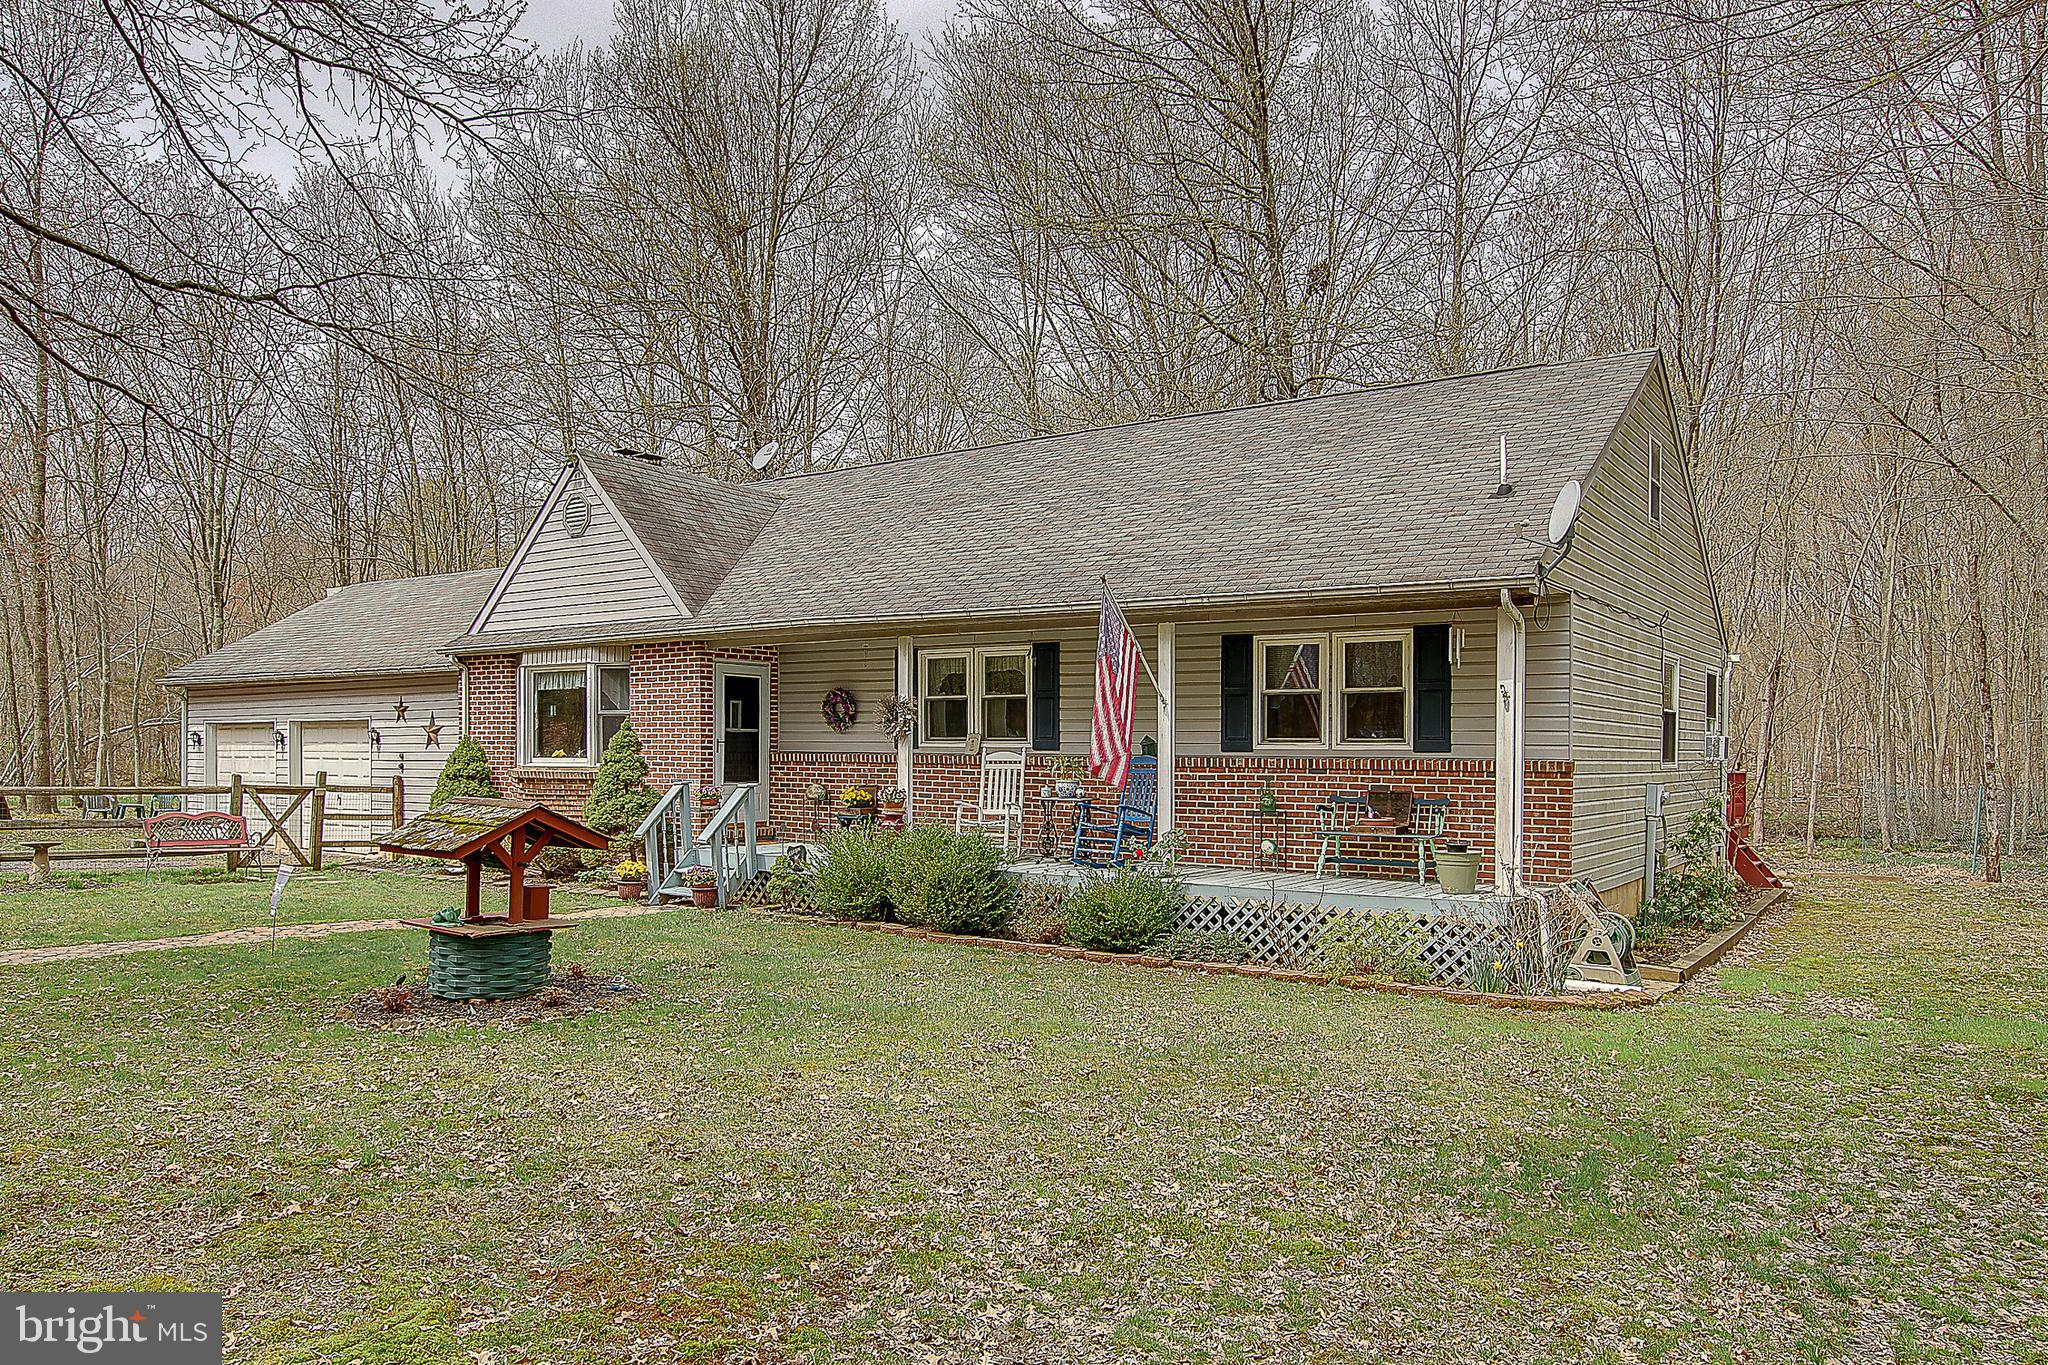 899 LONELY COTTAGE ROAD, UPPER BLACK EDDY, PA 18972